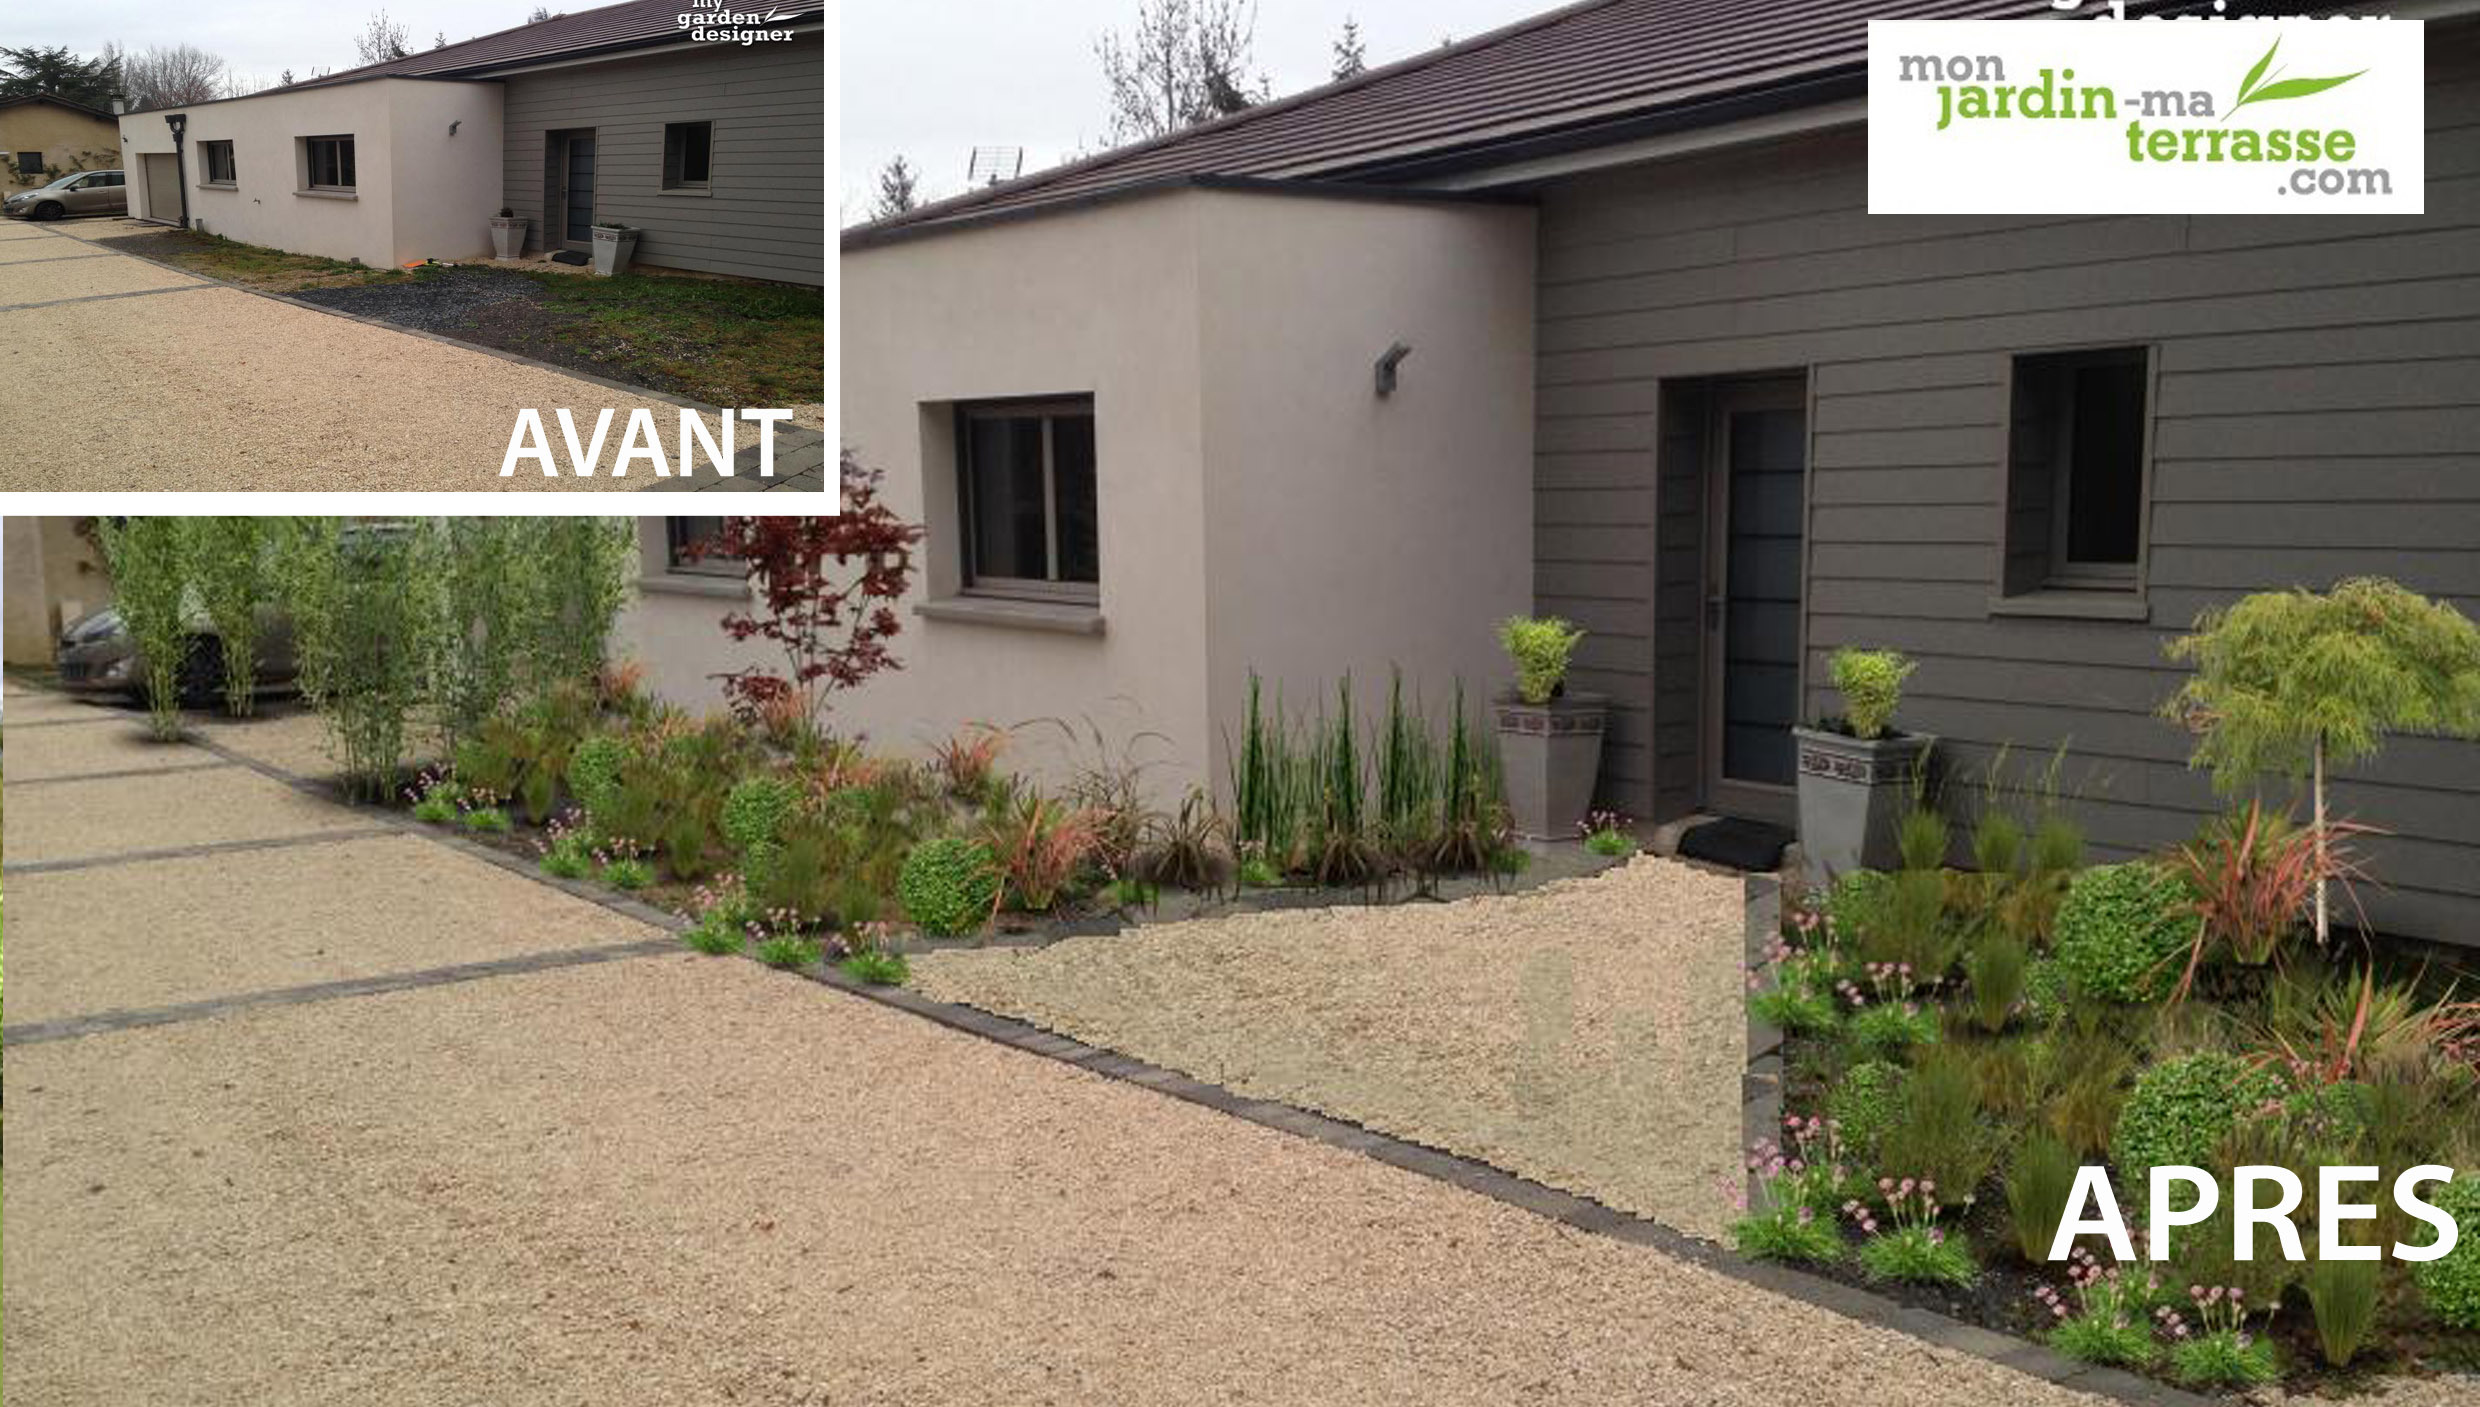 Am nagement du jardin de l entr e d une maison for Amenagement jardin contemporain